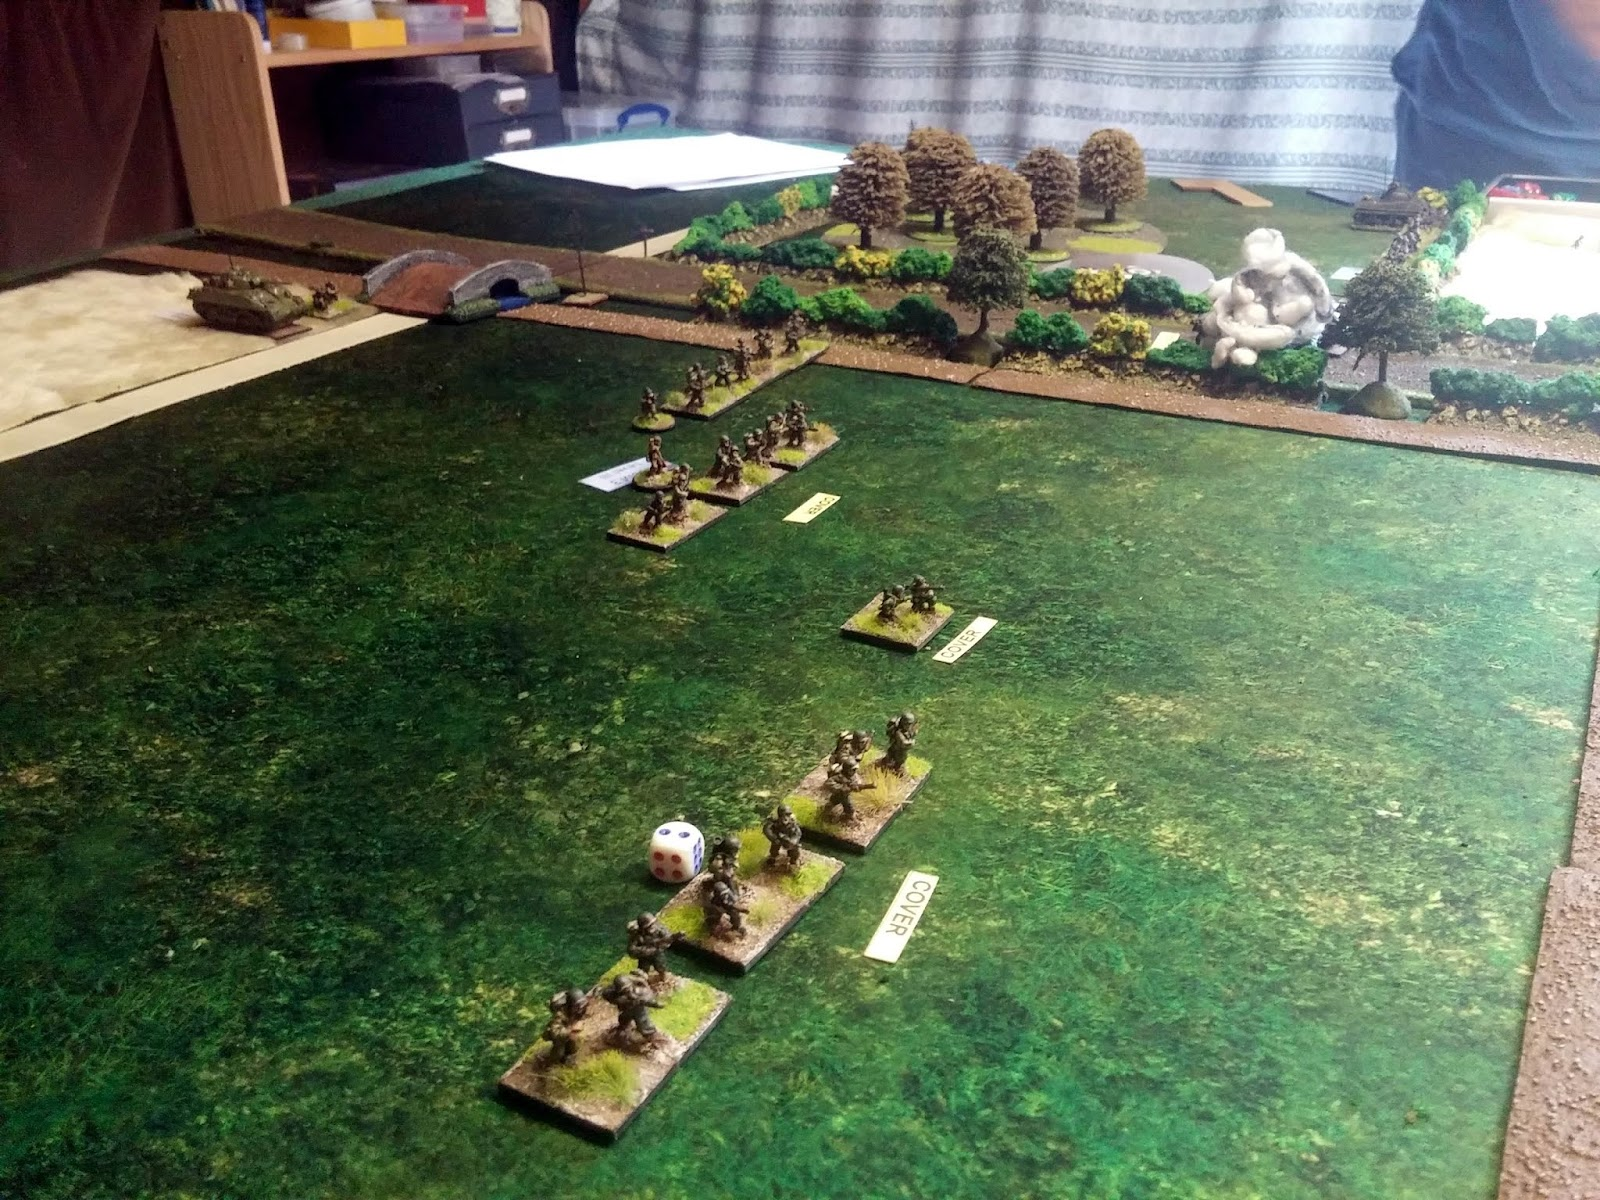 And advancing against my left with Tank support (one Sherman brewed on road)